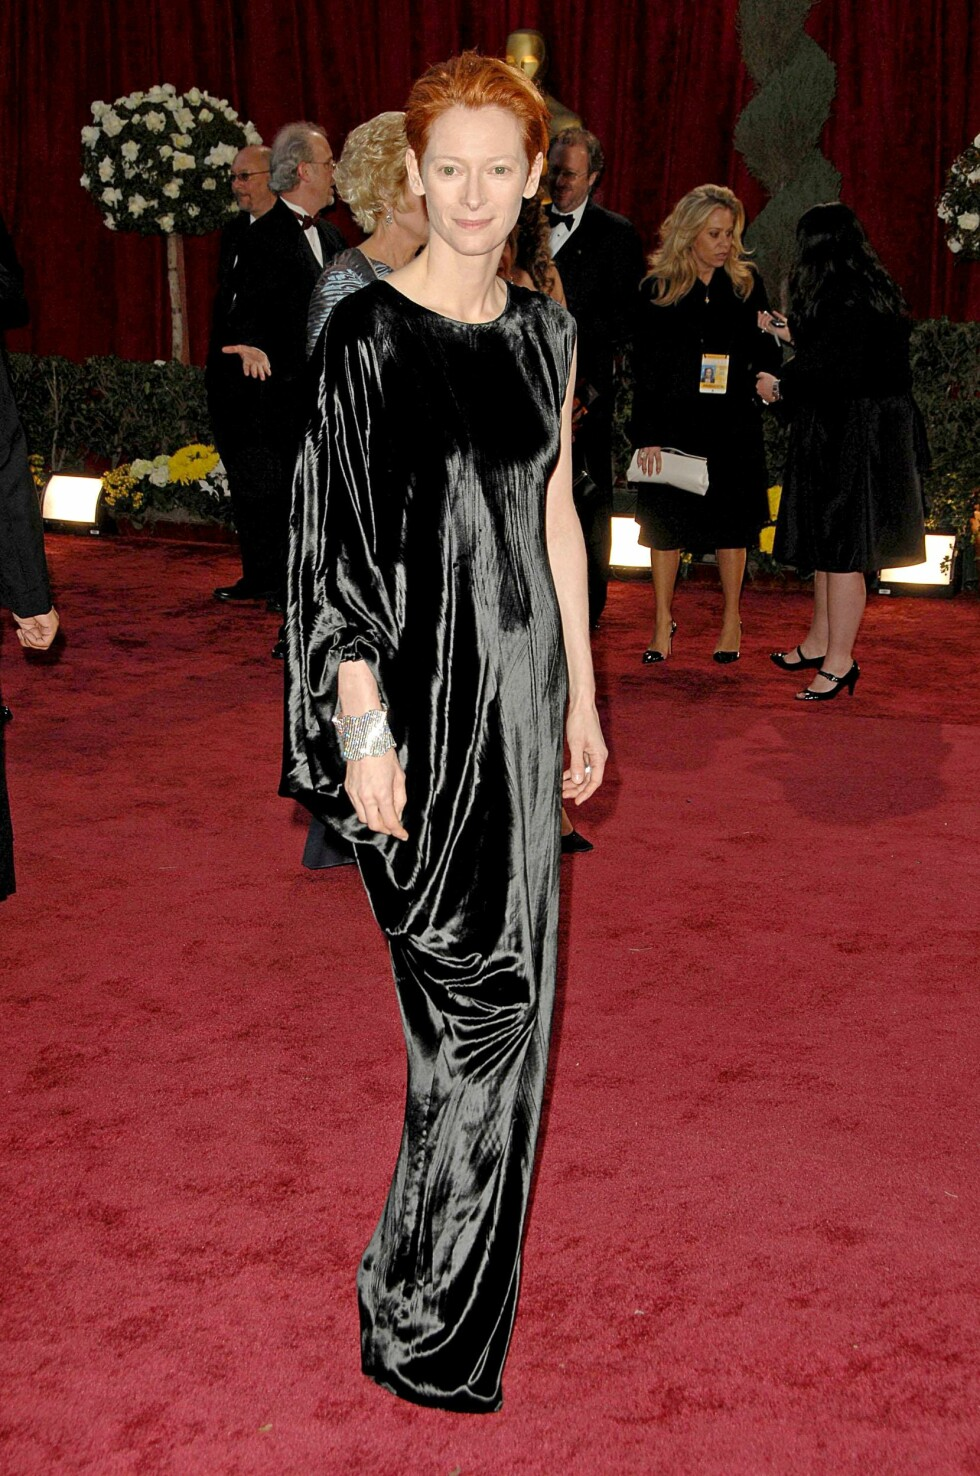 Tilda Swinton (wearing a Lanvin gown) at arrivals for RED CARPET - 80th Annual Academy Awards Oscars Ceremony, The Kodak Theatre, Los Angeles, CA, February 24, 2008. Photo by: David Longendyke/Everett Collection Foto: David Longendyke/Everett Collection                                                                 /All Over Press